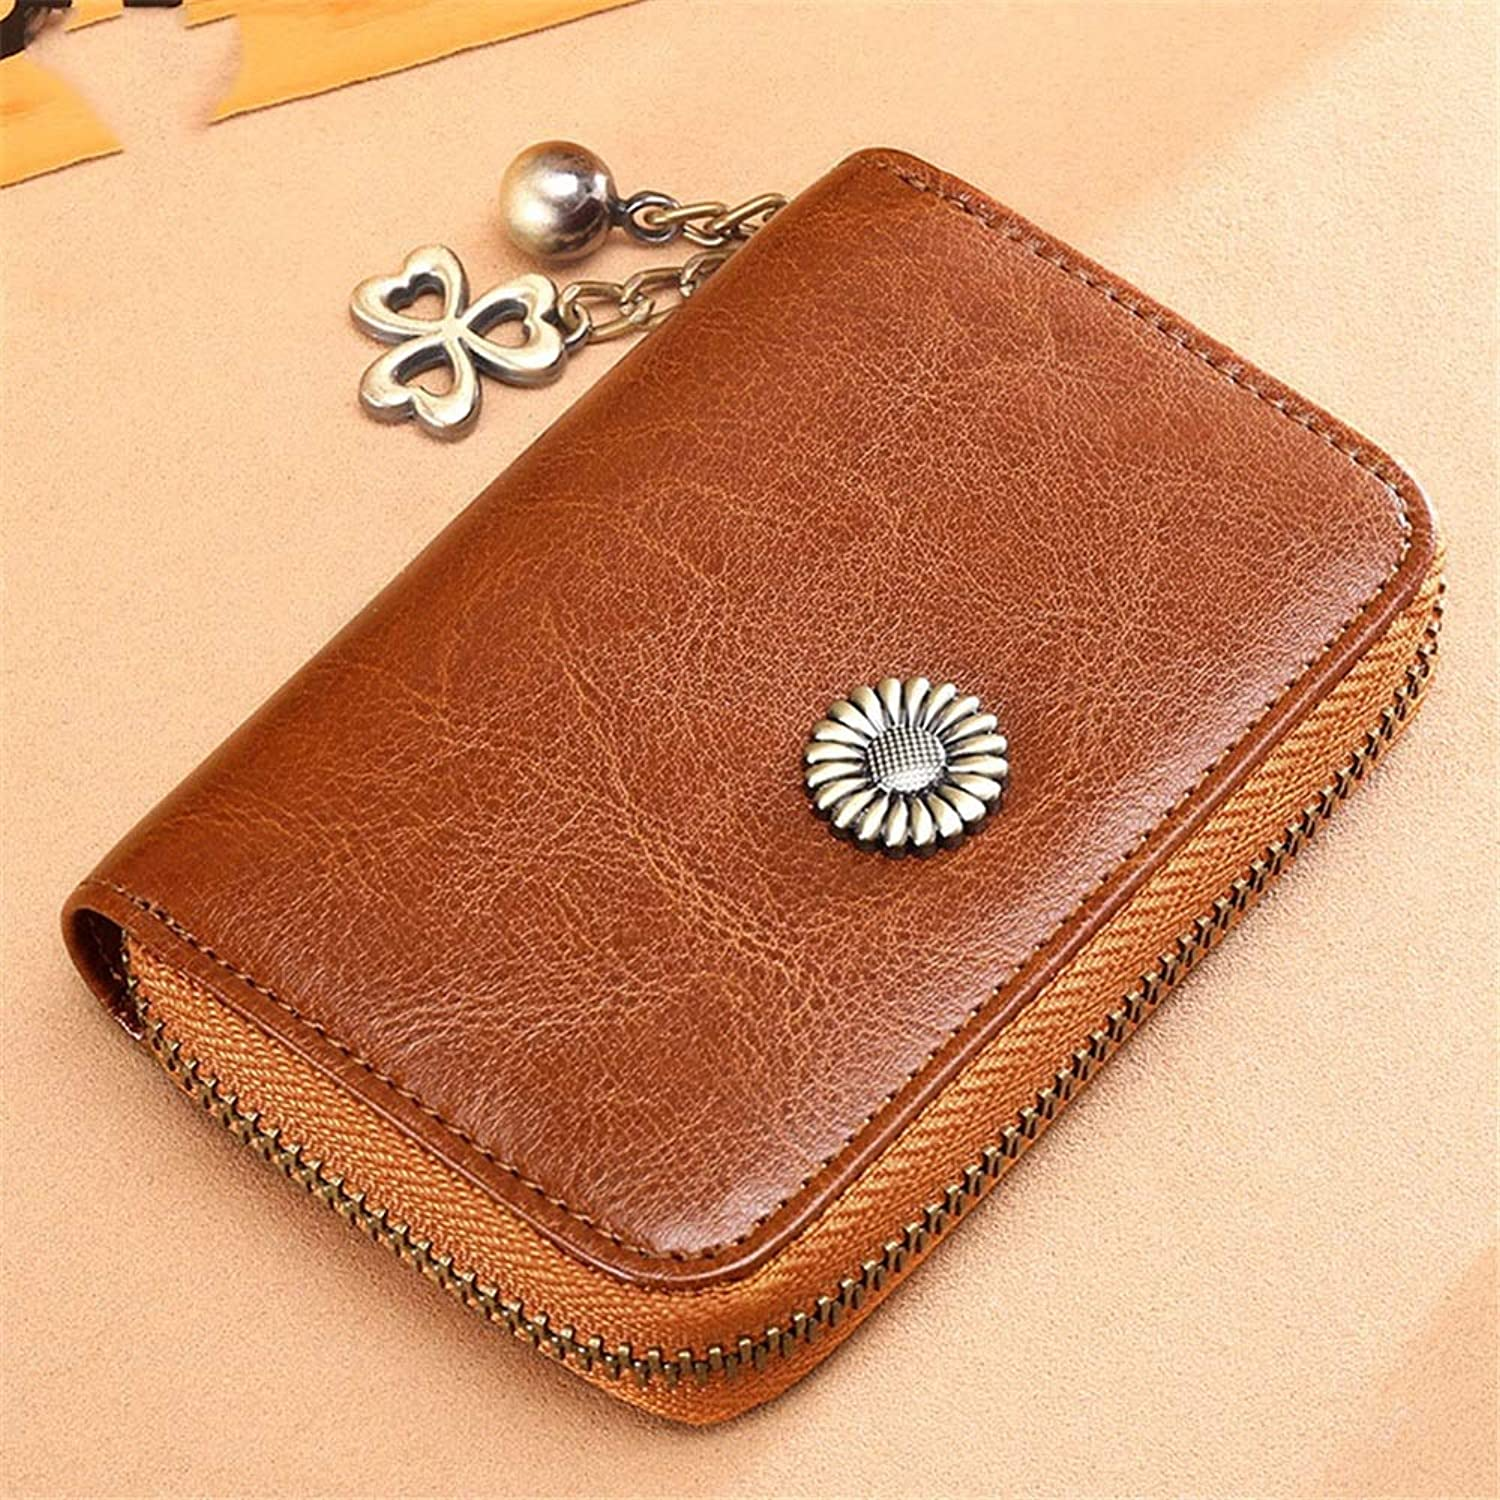 Women's Wallet Clutch Women Blocking Wallet Leather Zip Around Phone Clutch Large Travel Purse Wristlet Large Travel Wallet Wrist Bag (color   Brown)